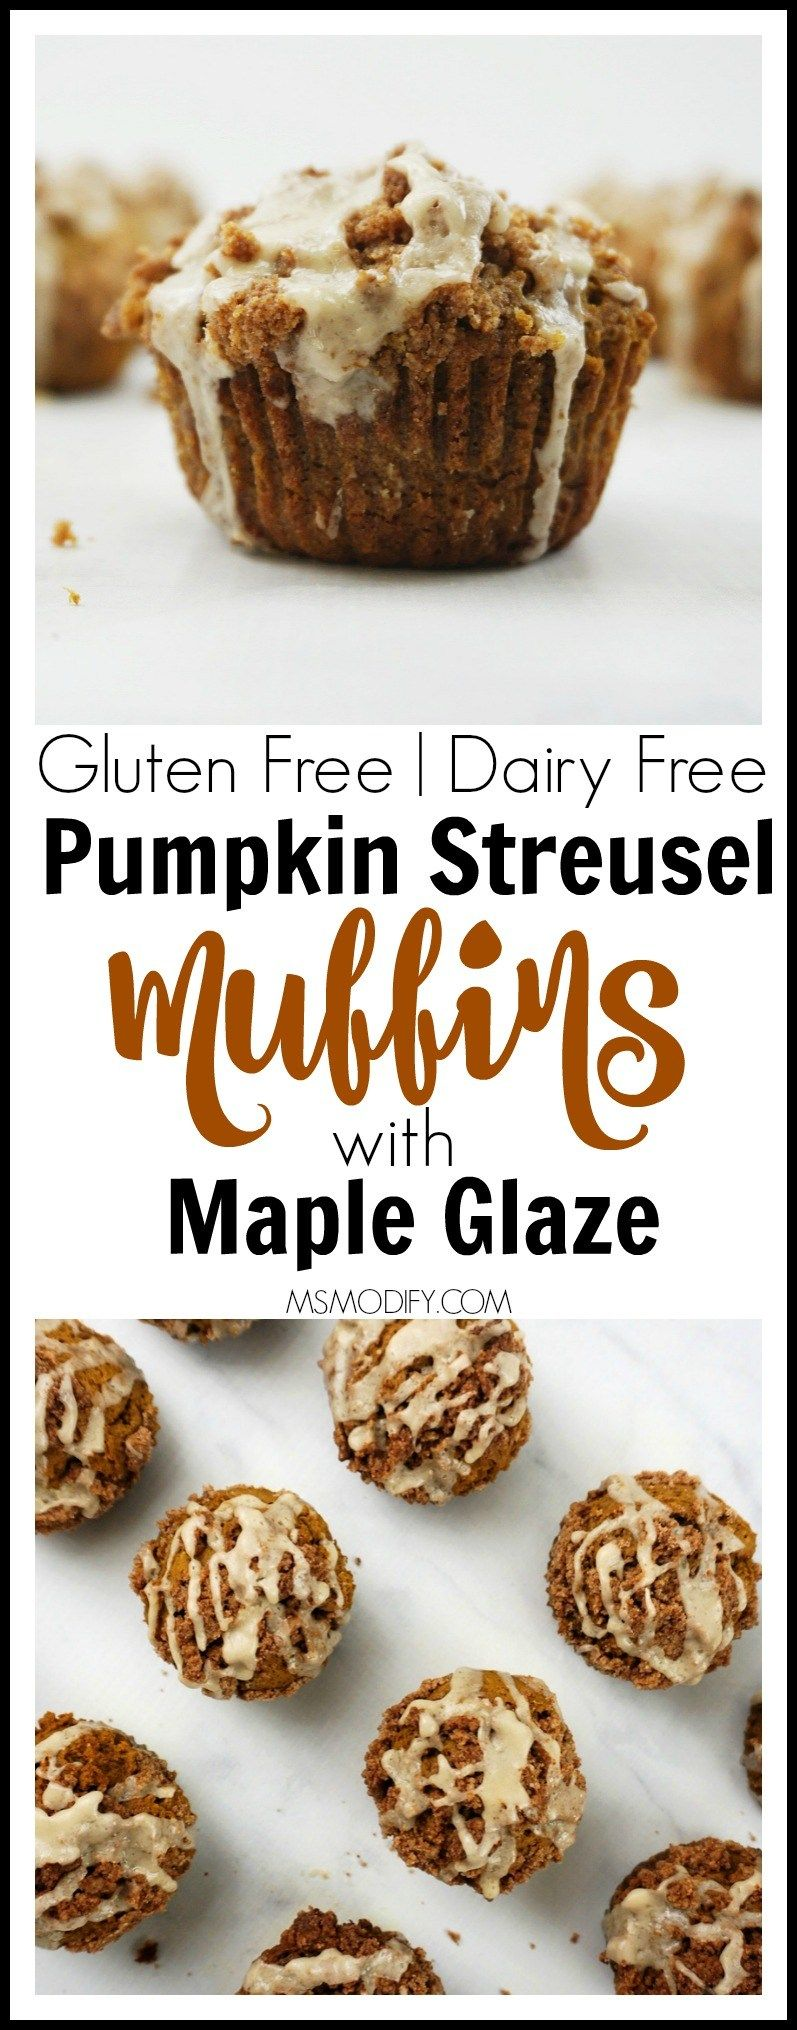 Gluten Free Pumpkin Streusel Muffins with Maple Glaze - MsModify #glutenfreebreakfasts